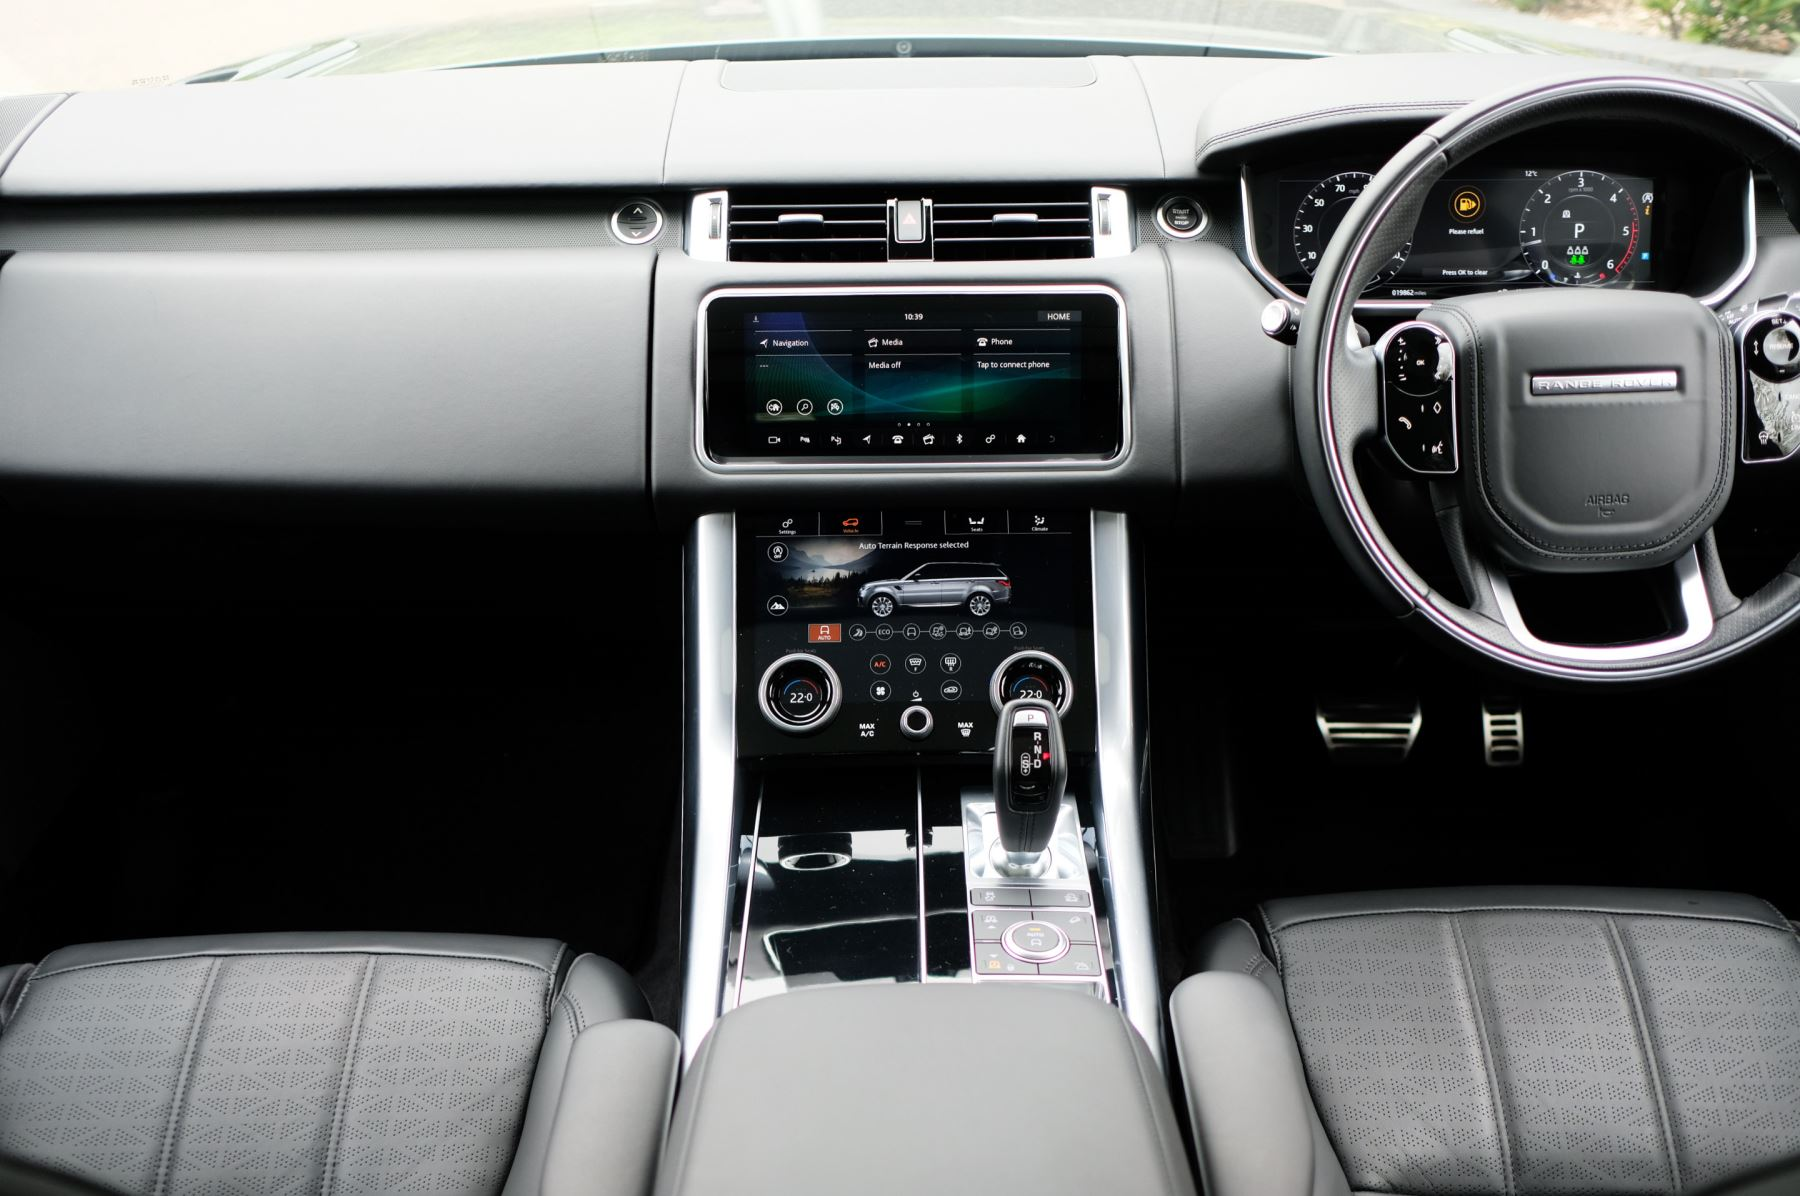 Land Rover Range Rover Sport 3.0 SDV6 Autobiography Dynamic 5dr [7 Seat] - Rear Seat Entertainment - 21 Inch Alloys image 20